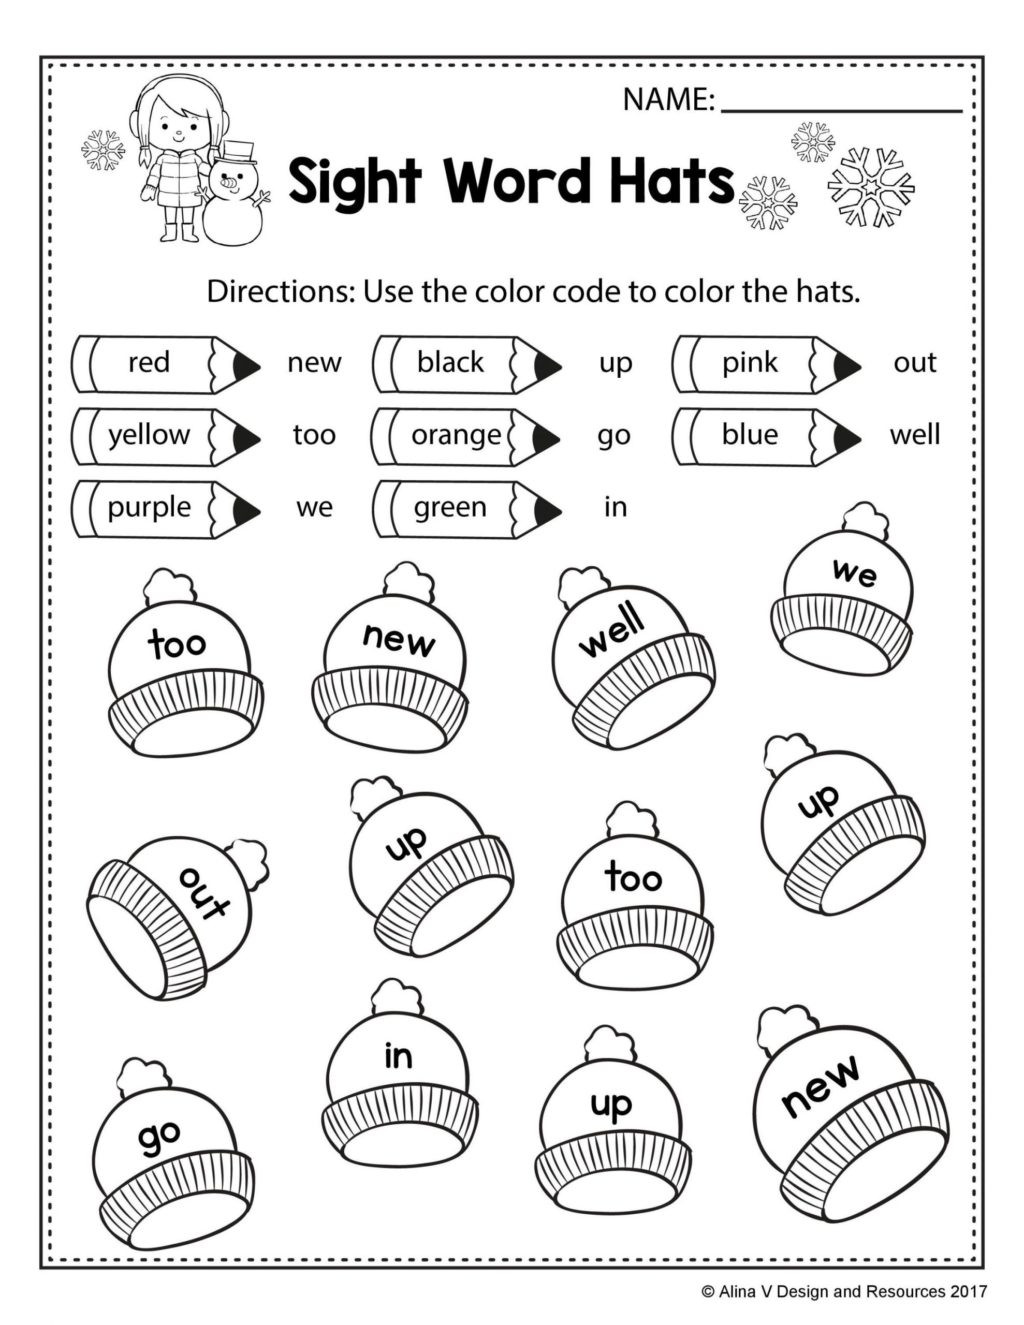 Bar Models Worksheets 2nd Grade Worksheet Second Gradeddition Worksheets Worksheet 2nd